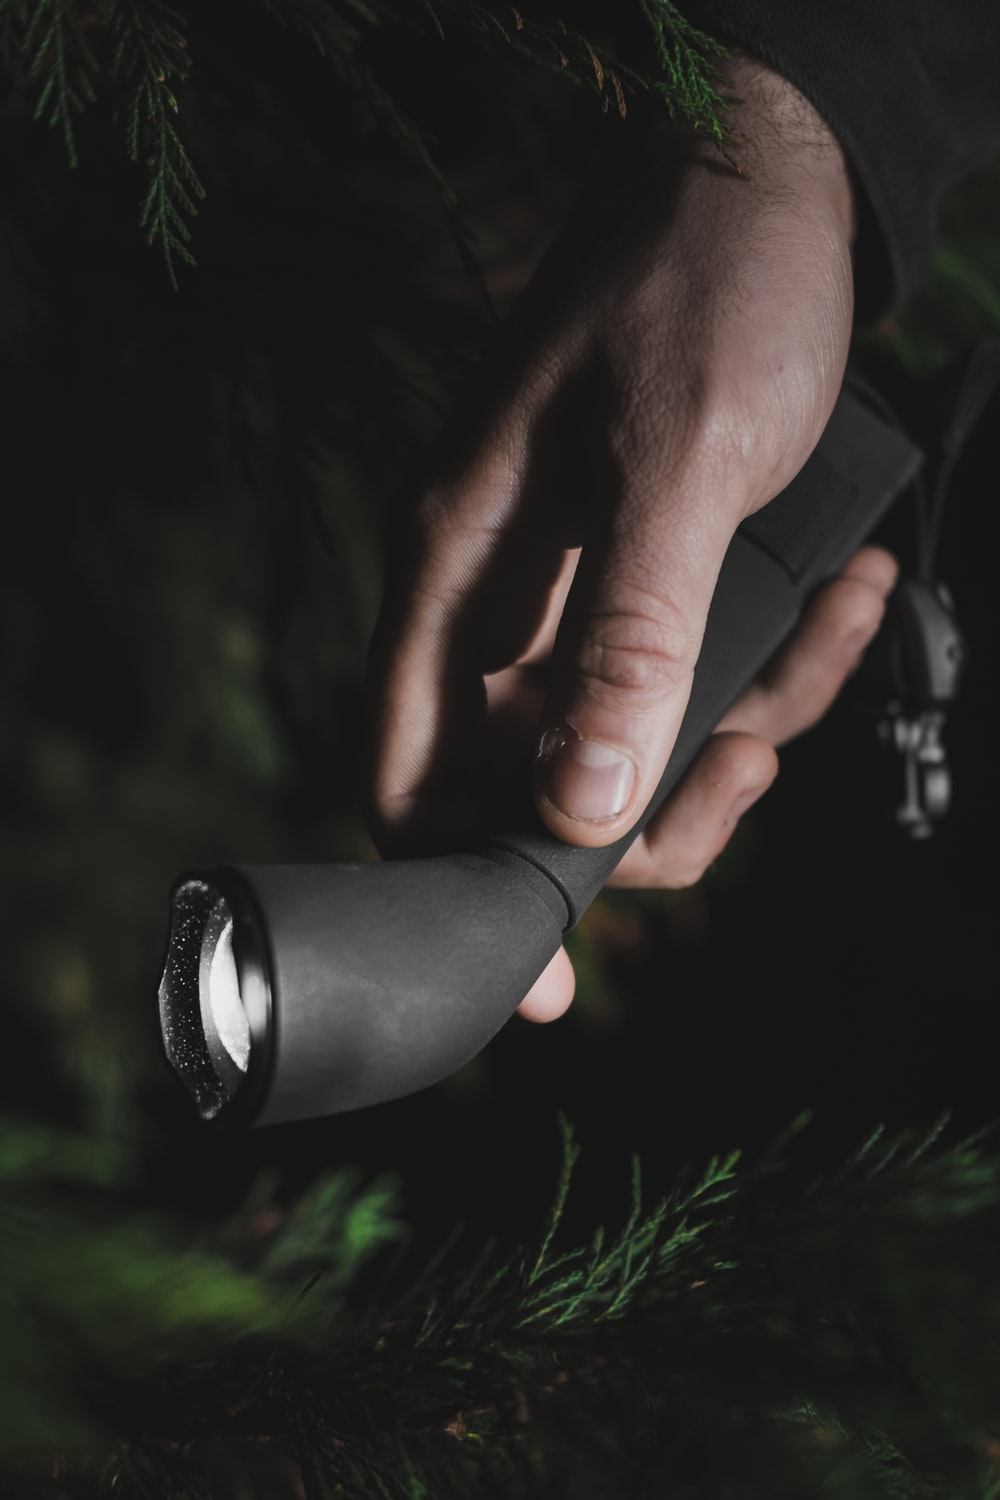 person holding black and silver camera lens